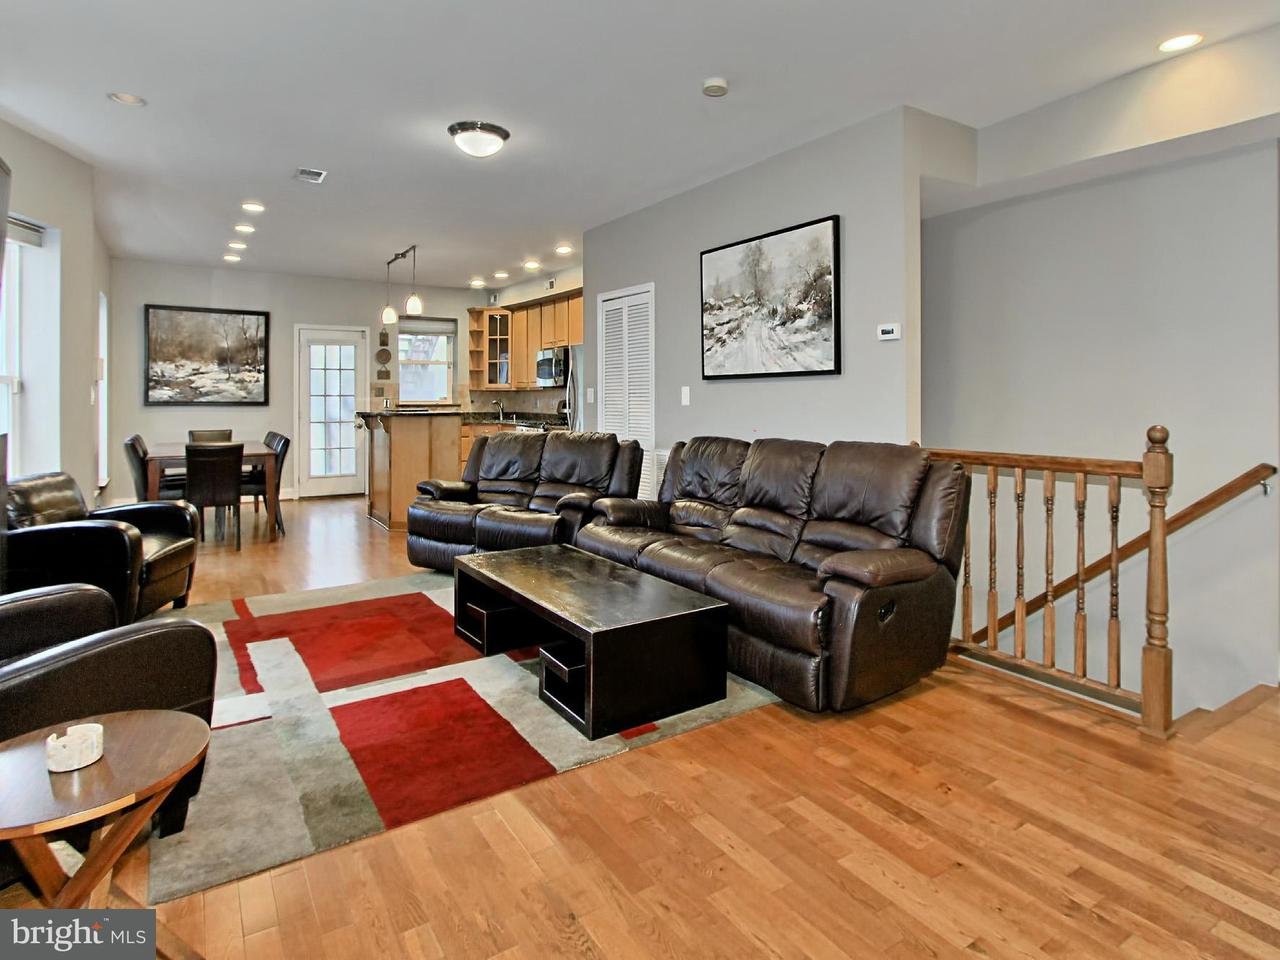 Additional photo for property listing at 3518 10th St NW #a  Washington, District Of Columbia 20010 United States